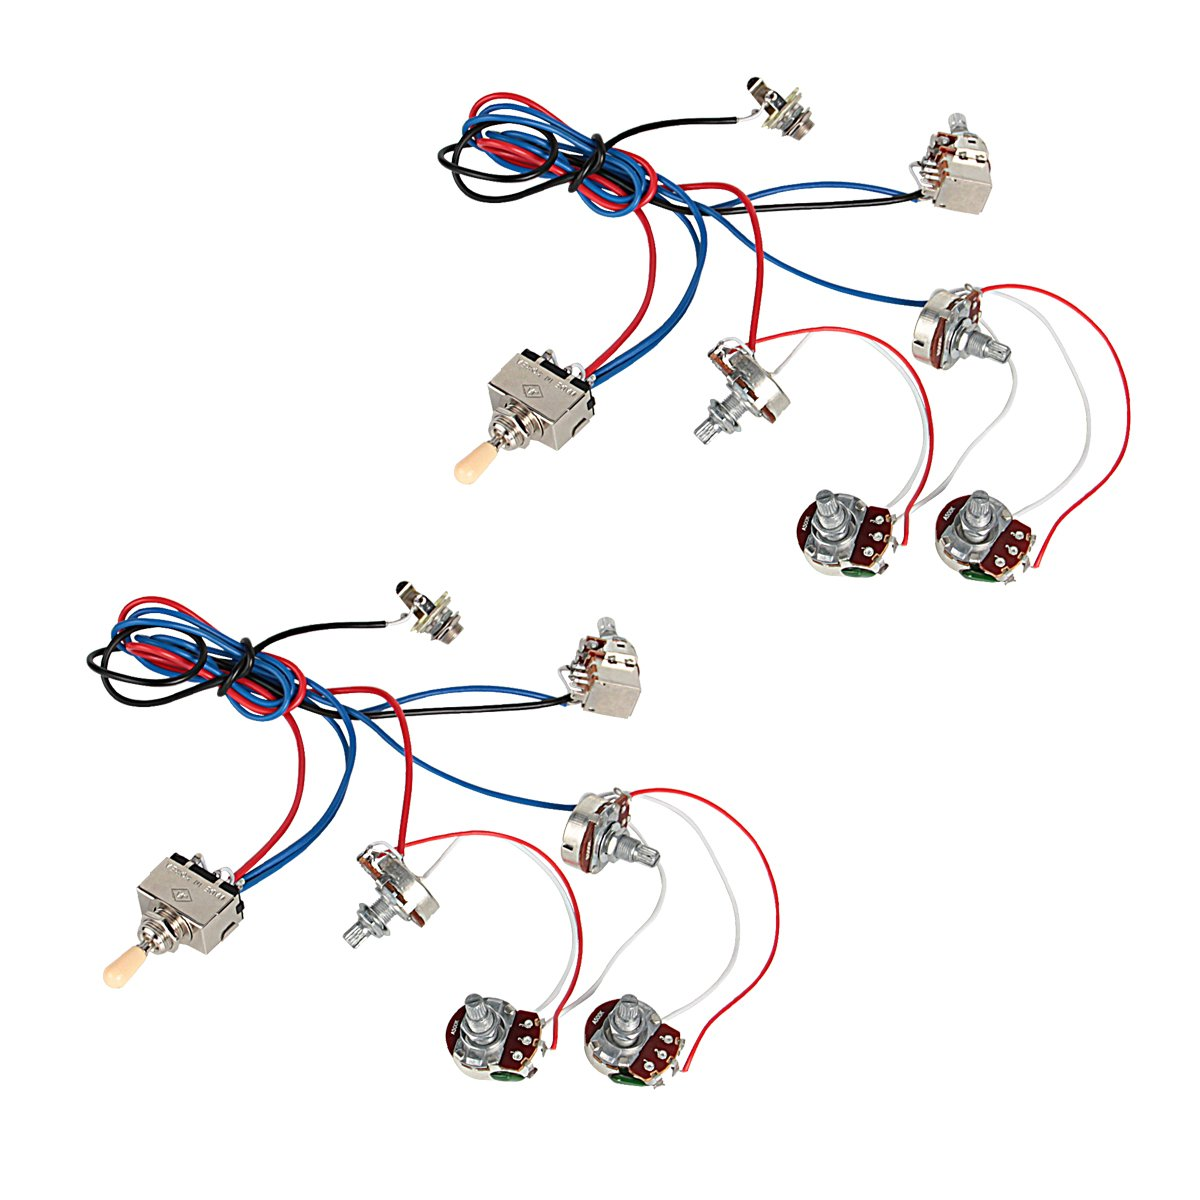 Nice Ibanez Wiring Thin Bulldog Wiring Regular Bulldog Security Wiring Bulldog Car Wiring Diagrams Young 3 Pickup Les Paul Wiring Diagram GreenSecurity Diagram Amazon.com: Kmise Electric Guitar Wiring Harness Kit 2V2T Pot Jack ..